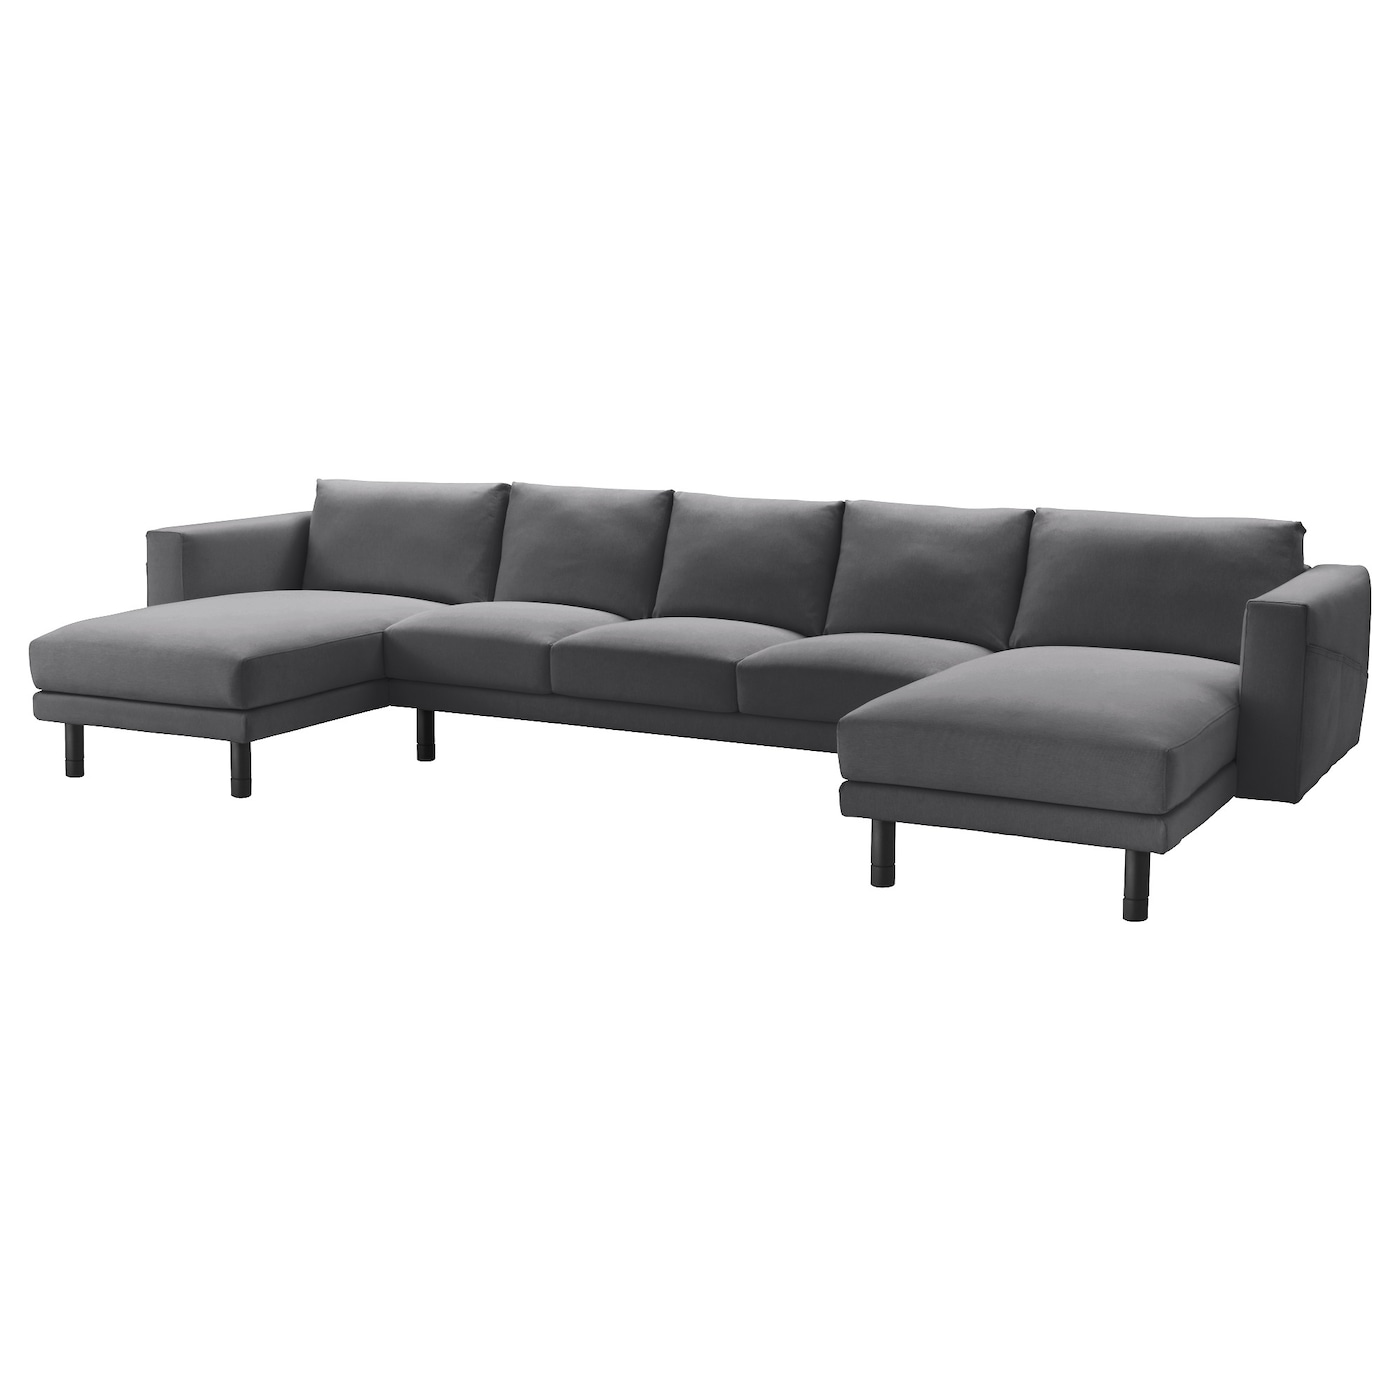 norsborg 3 seat sofa with 2 chaise longues finnsta